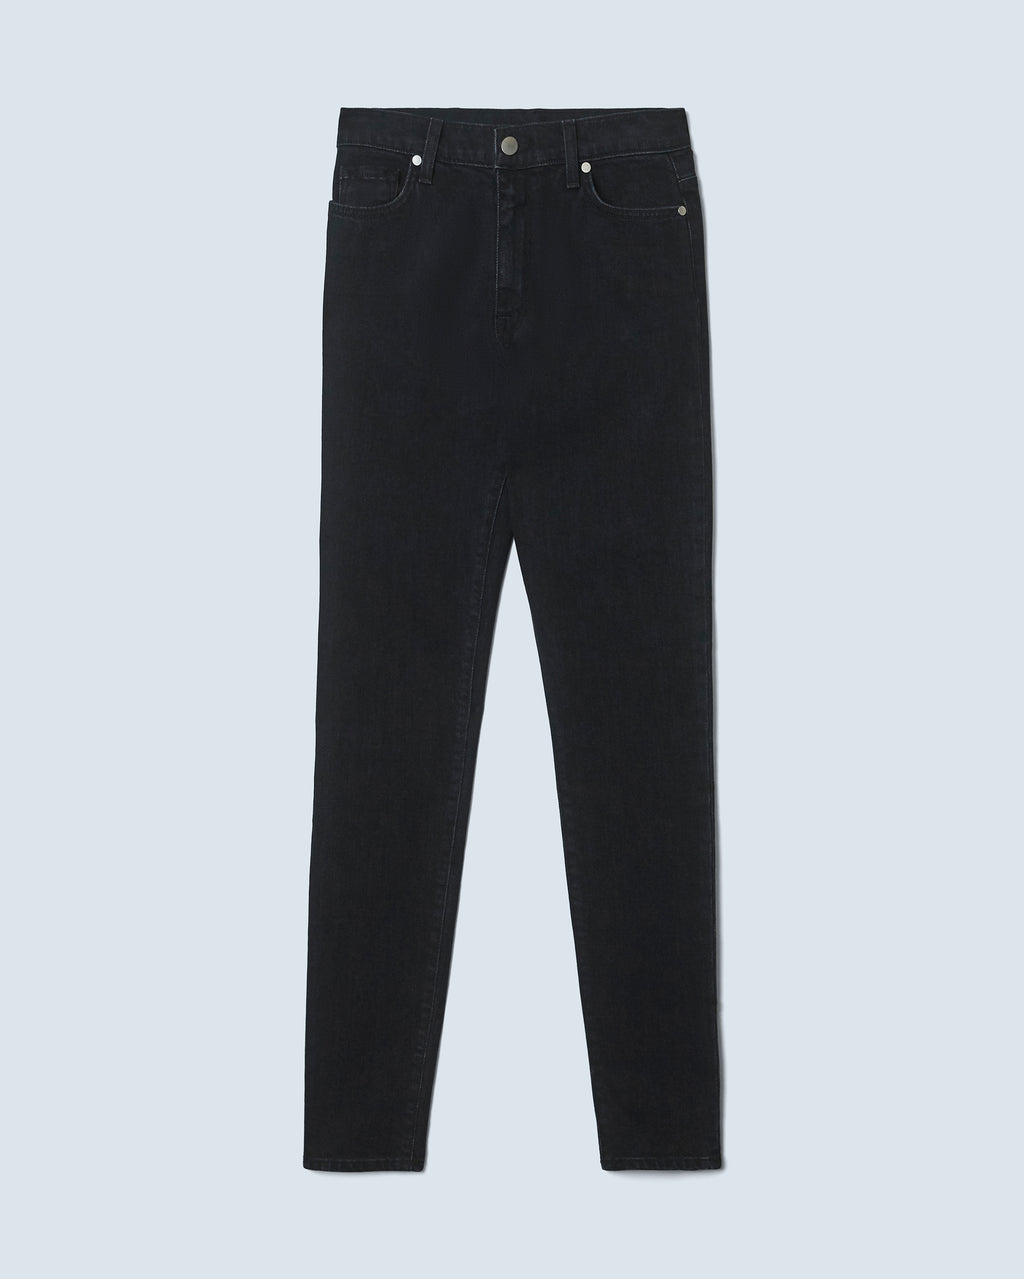 The Ultra-High Rise Skinny Jean in Carbon Black